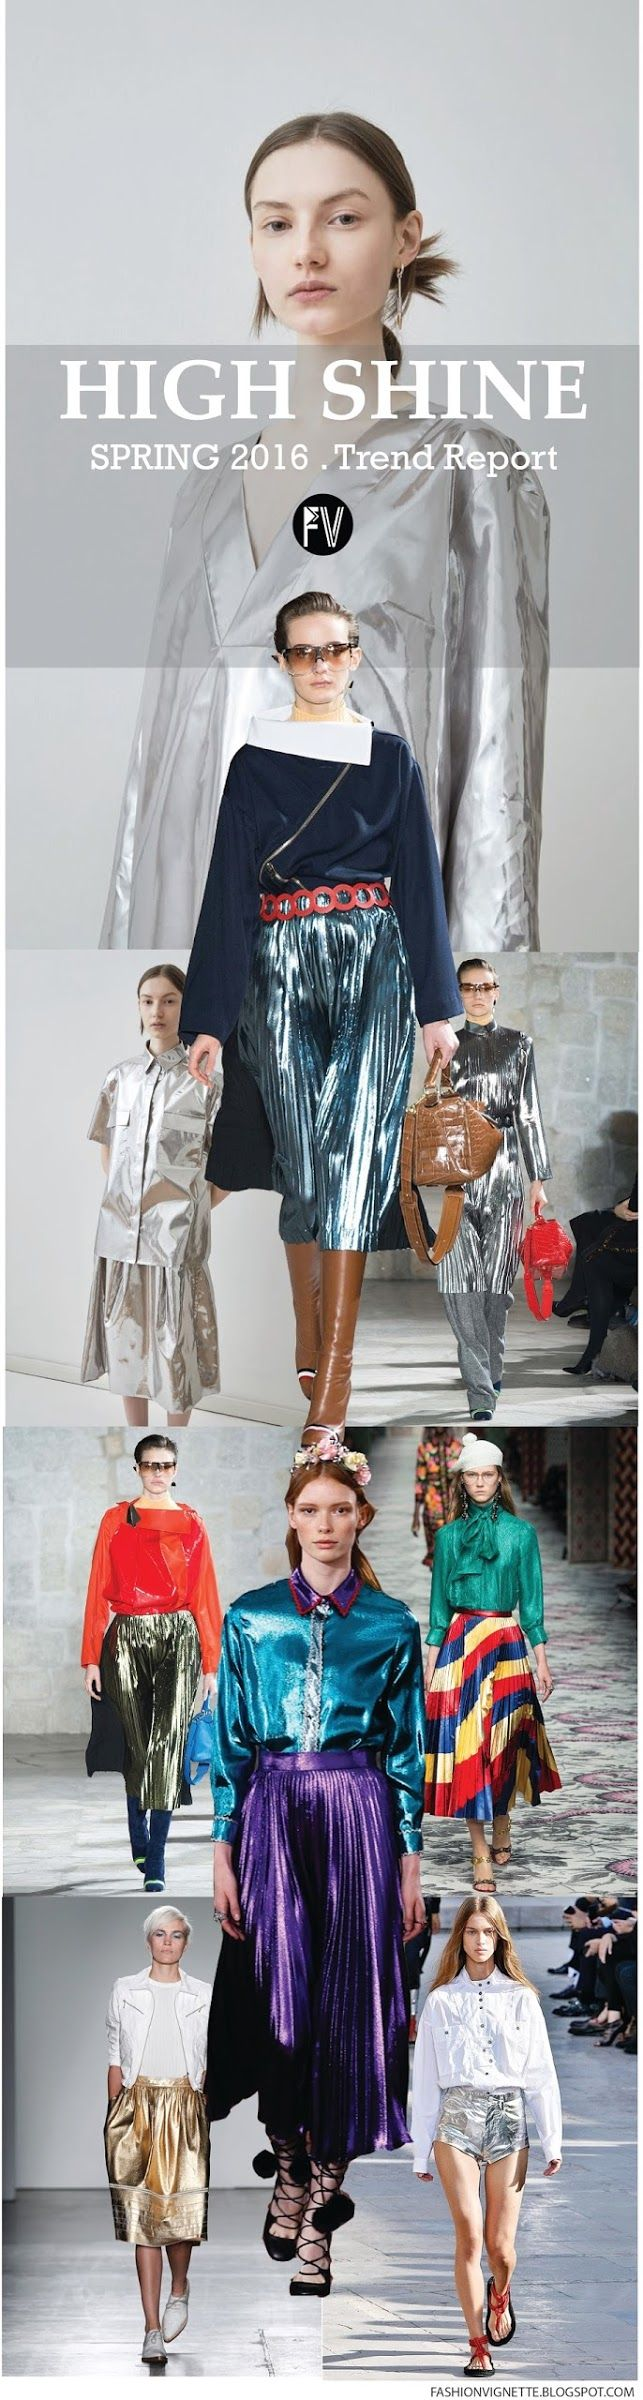 [ TREND REPORT ] HIGH SHINE - SPRING 2016. For more follow www.pinterest.com/ninayay and stay positively #inspired